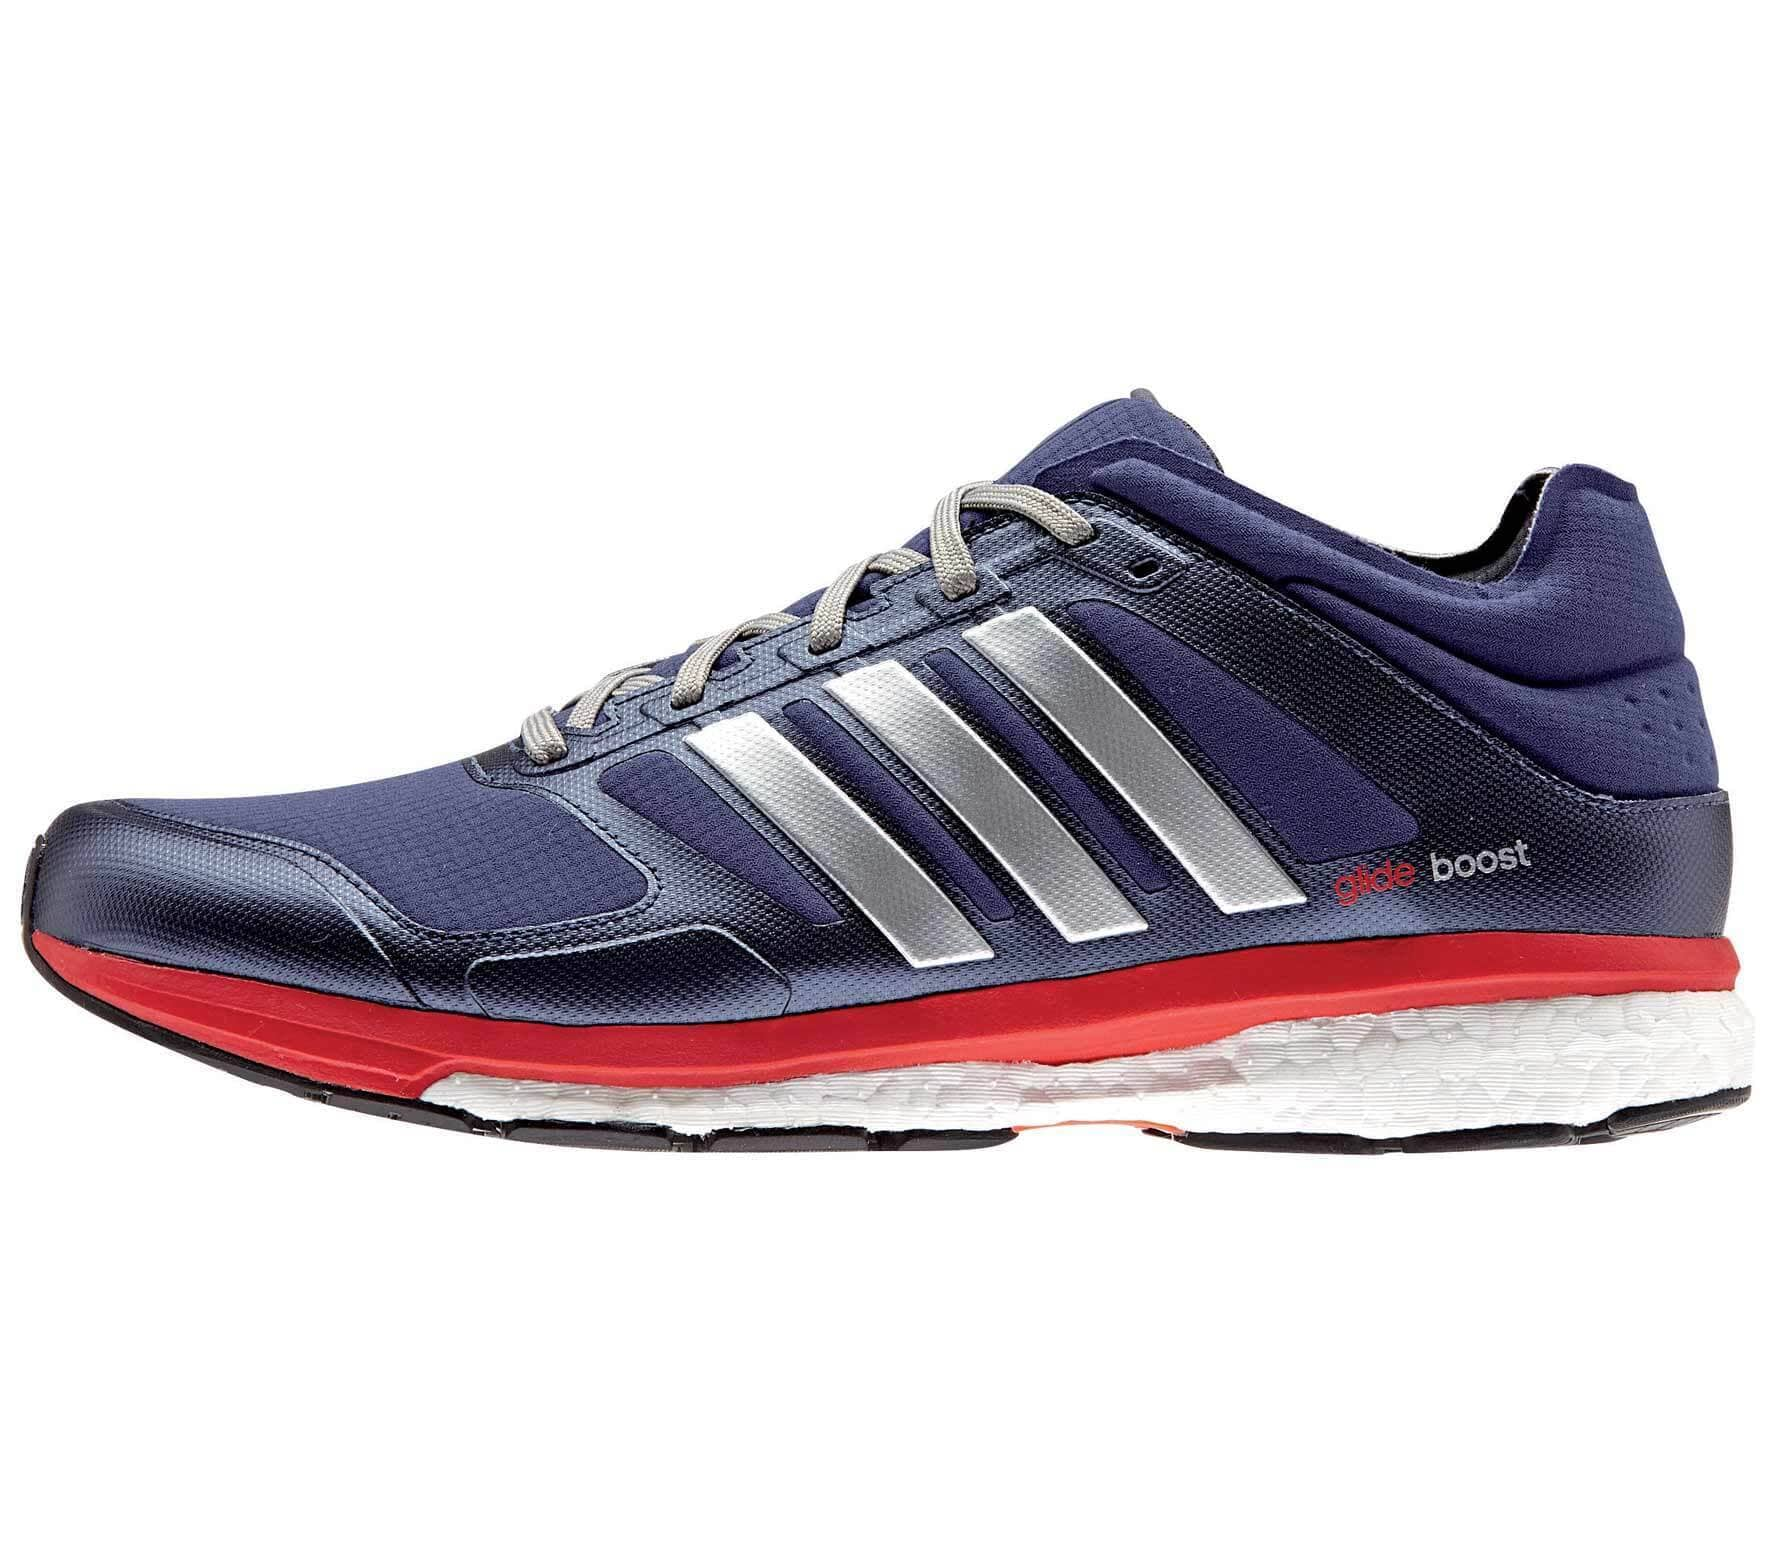 454e4f6b05977 Adidas - Supernova Glide Boost 7 Climaheat men s running shoes (dark blue  silver)